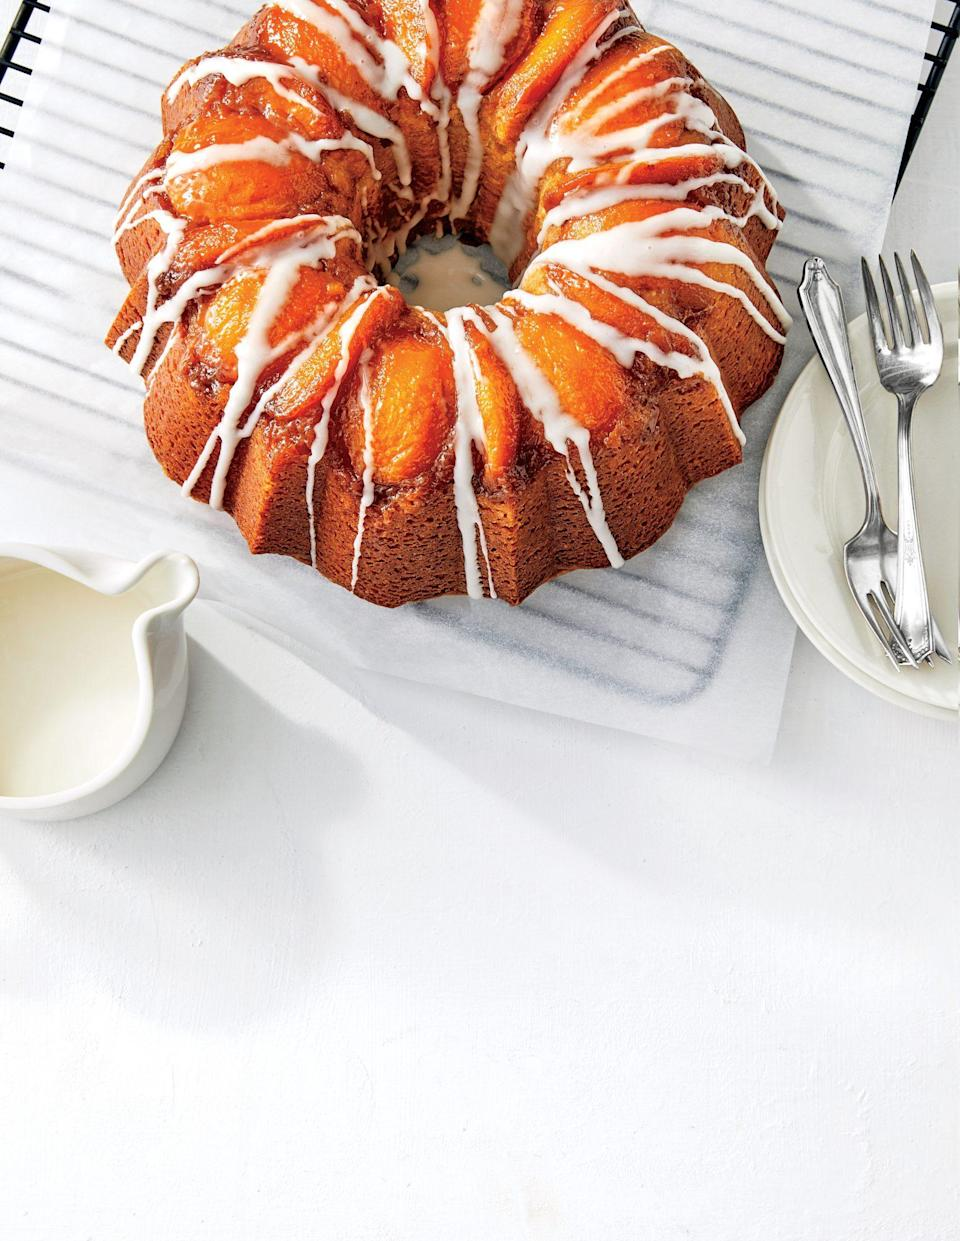 "<p><strong>Recipe: </strong><a href=""https://www.southernliving.com/recipes/peach-bourbon-upside-down-bundt-cake-recipe"" rel=""nofollow noopener"" target=""_blank"" data-ylk=""slk:Peach-Bourbon Upside-Down Cake"" class=""link rapid-noclick-resp""><strong>Peach-Bourbon Upside-Down Cake</strong></a></p> <p>This recipe from a few years ago saw a huge resurgence online this summer. The combination of peaches, bourbon, and brown sugar is just too good to turn down when the farmers' market is full of fresh peaches. ""Best cake ever! It will not disappoint you,"" said one reader.</p>"